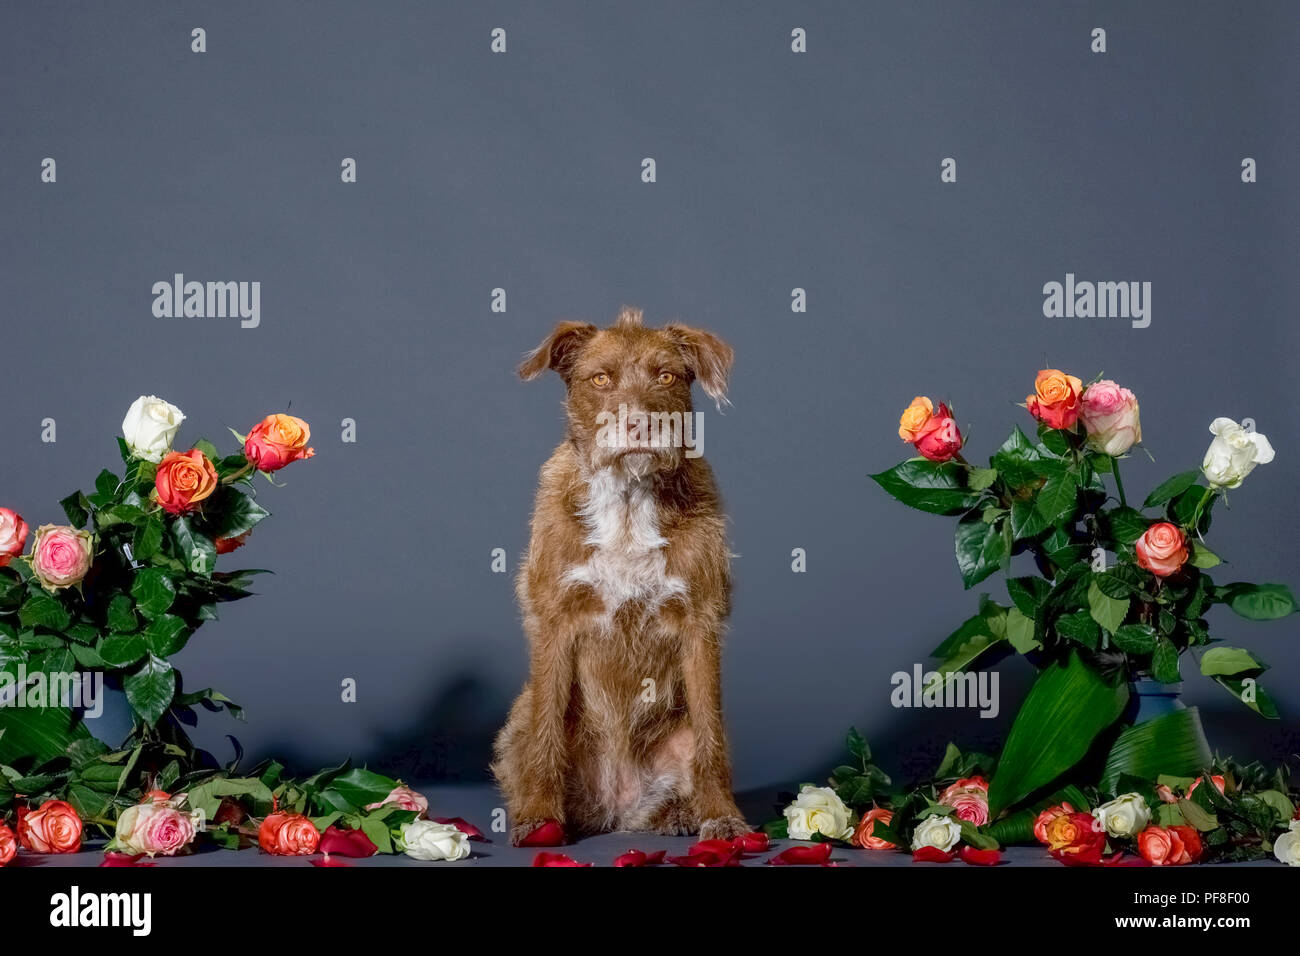 Studio shot of a sitting brown dog surrounded by flowers on the set with a black background Stock Photo